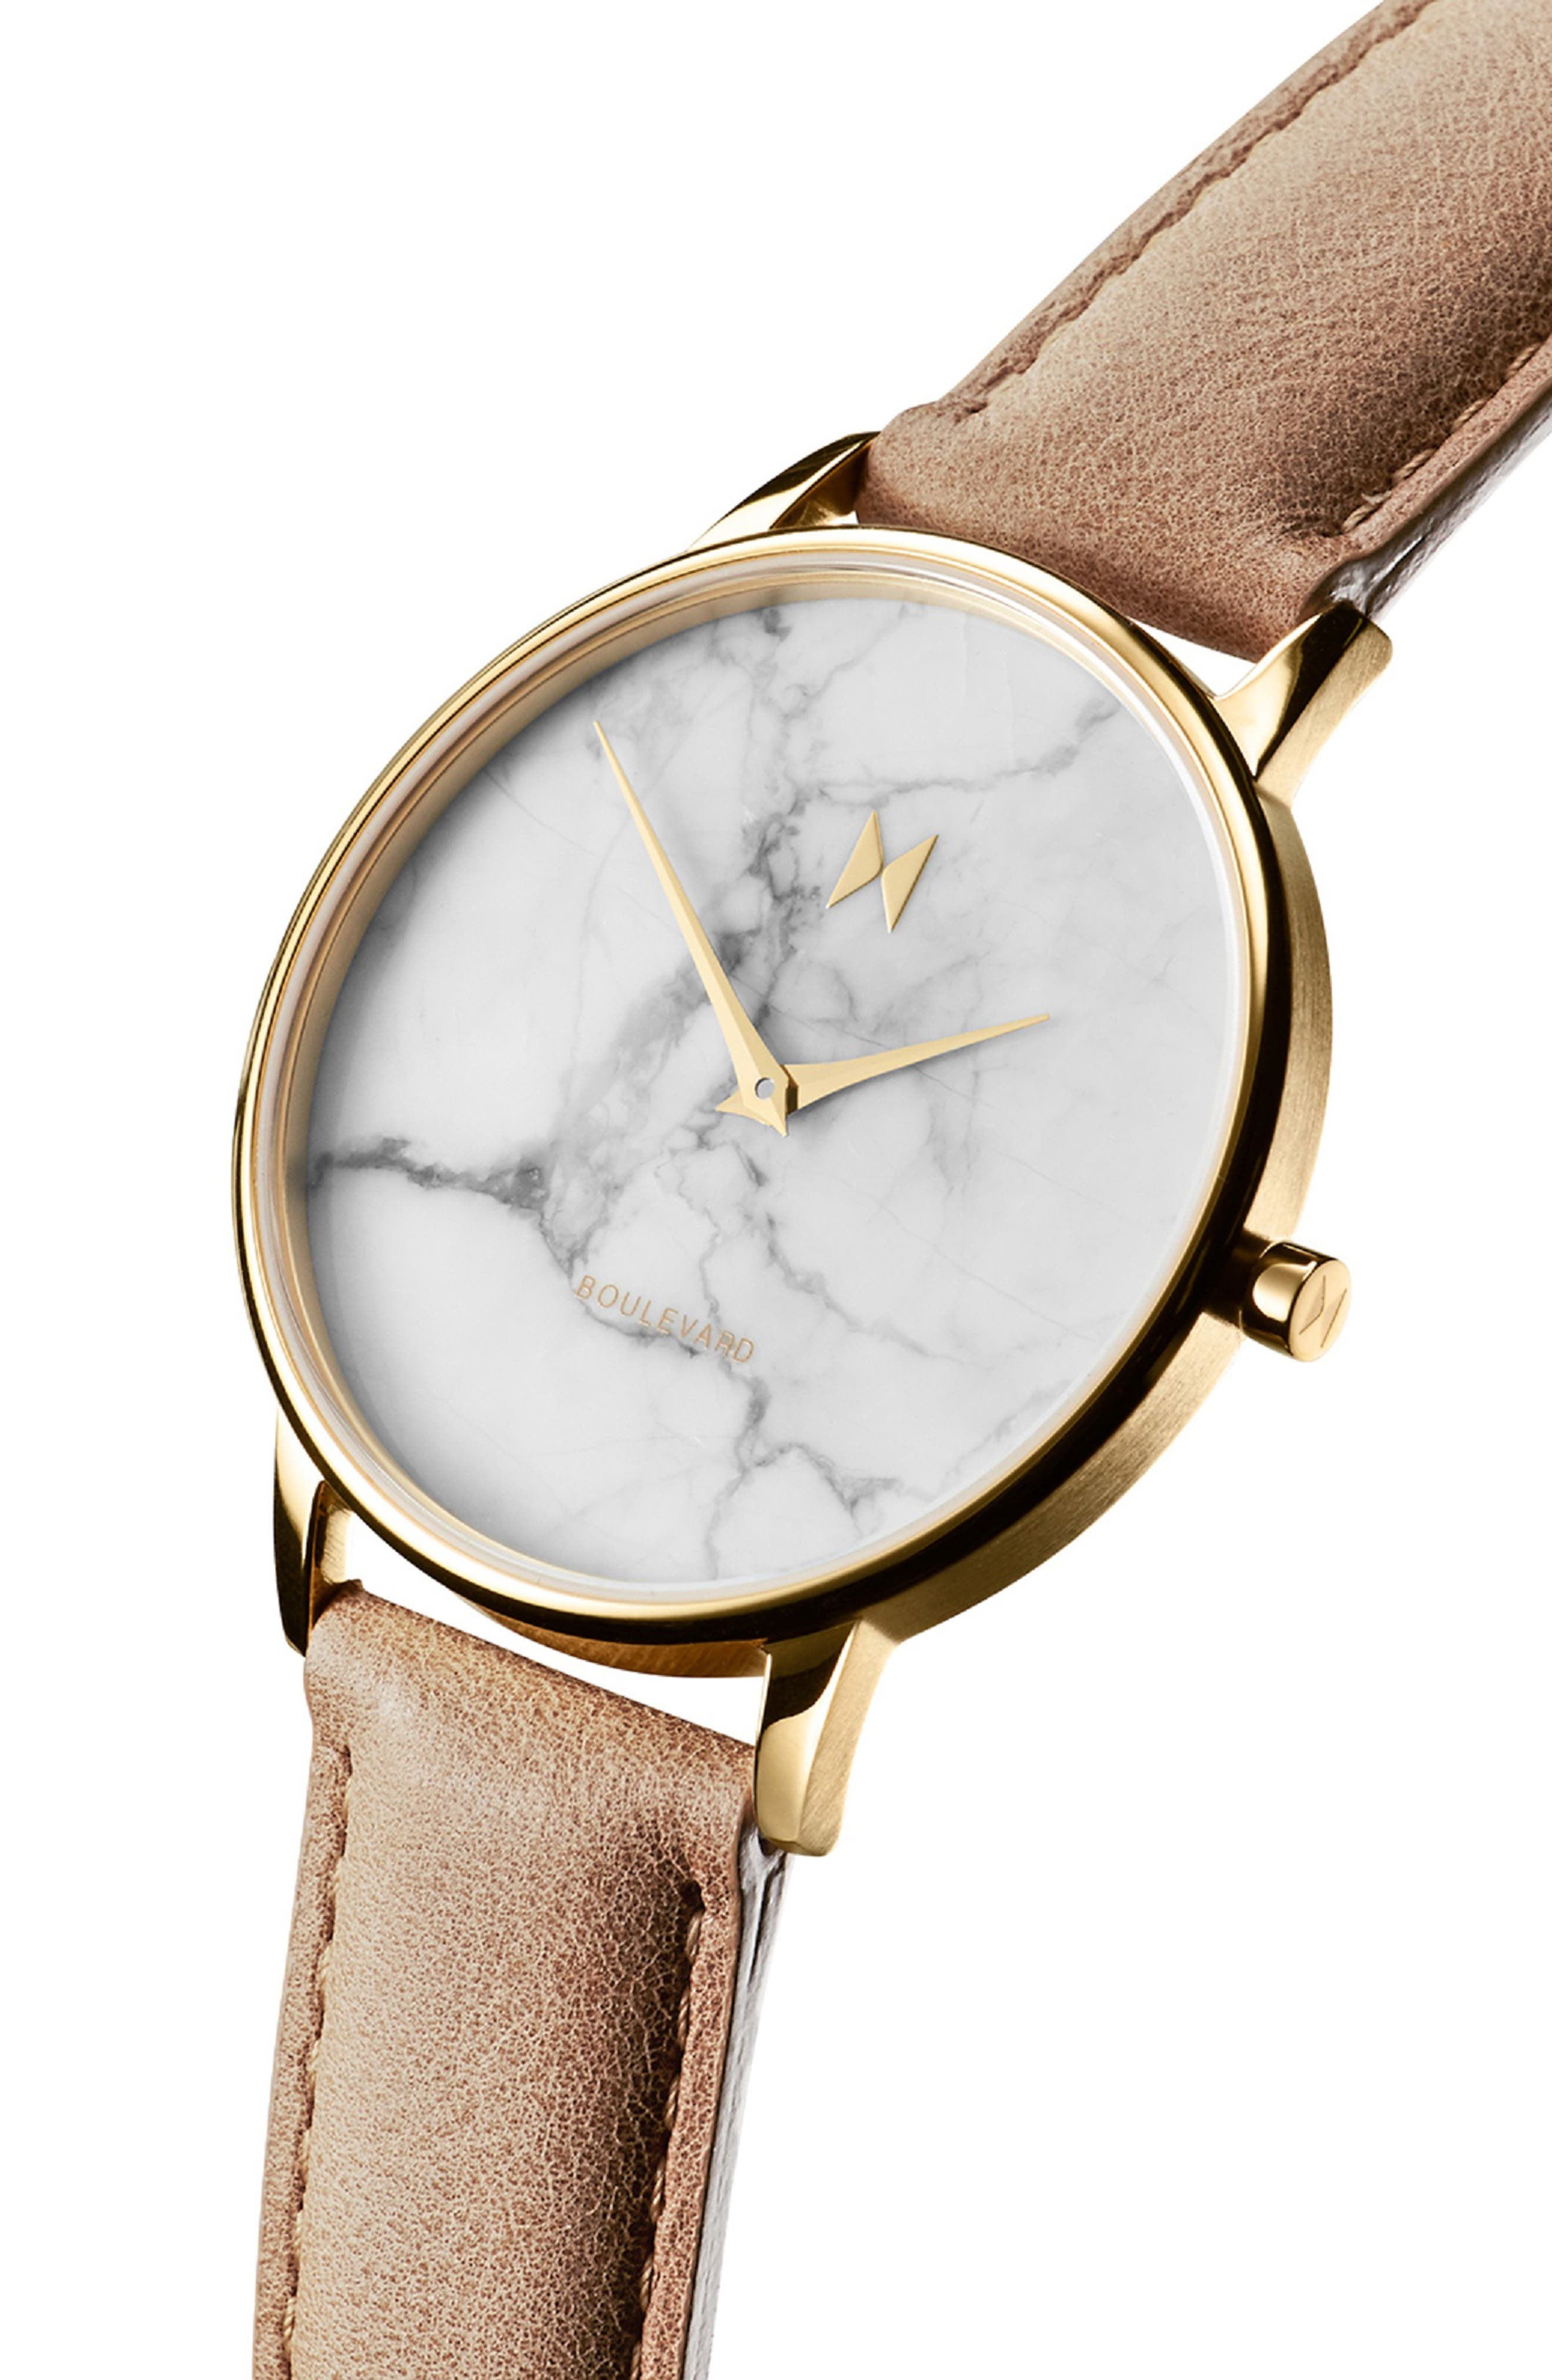 MVMT, Boulevard Leather Strap Watch, 38mm, Alternate thumbnail 4, color, CARAMEL/ WHITE MARBLE/ GOLD